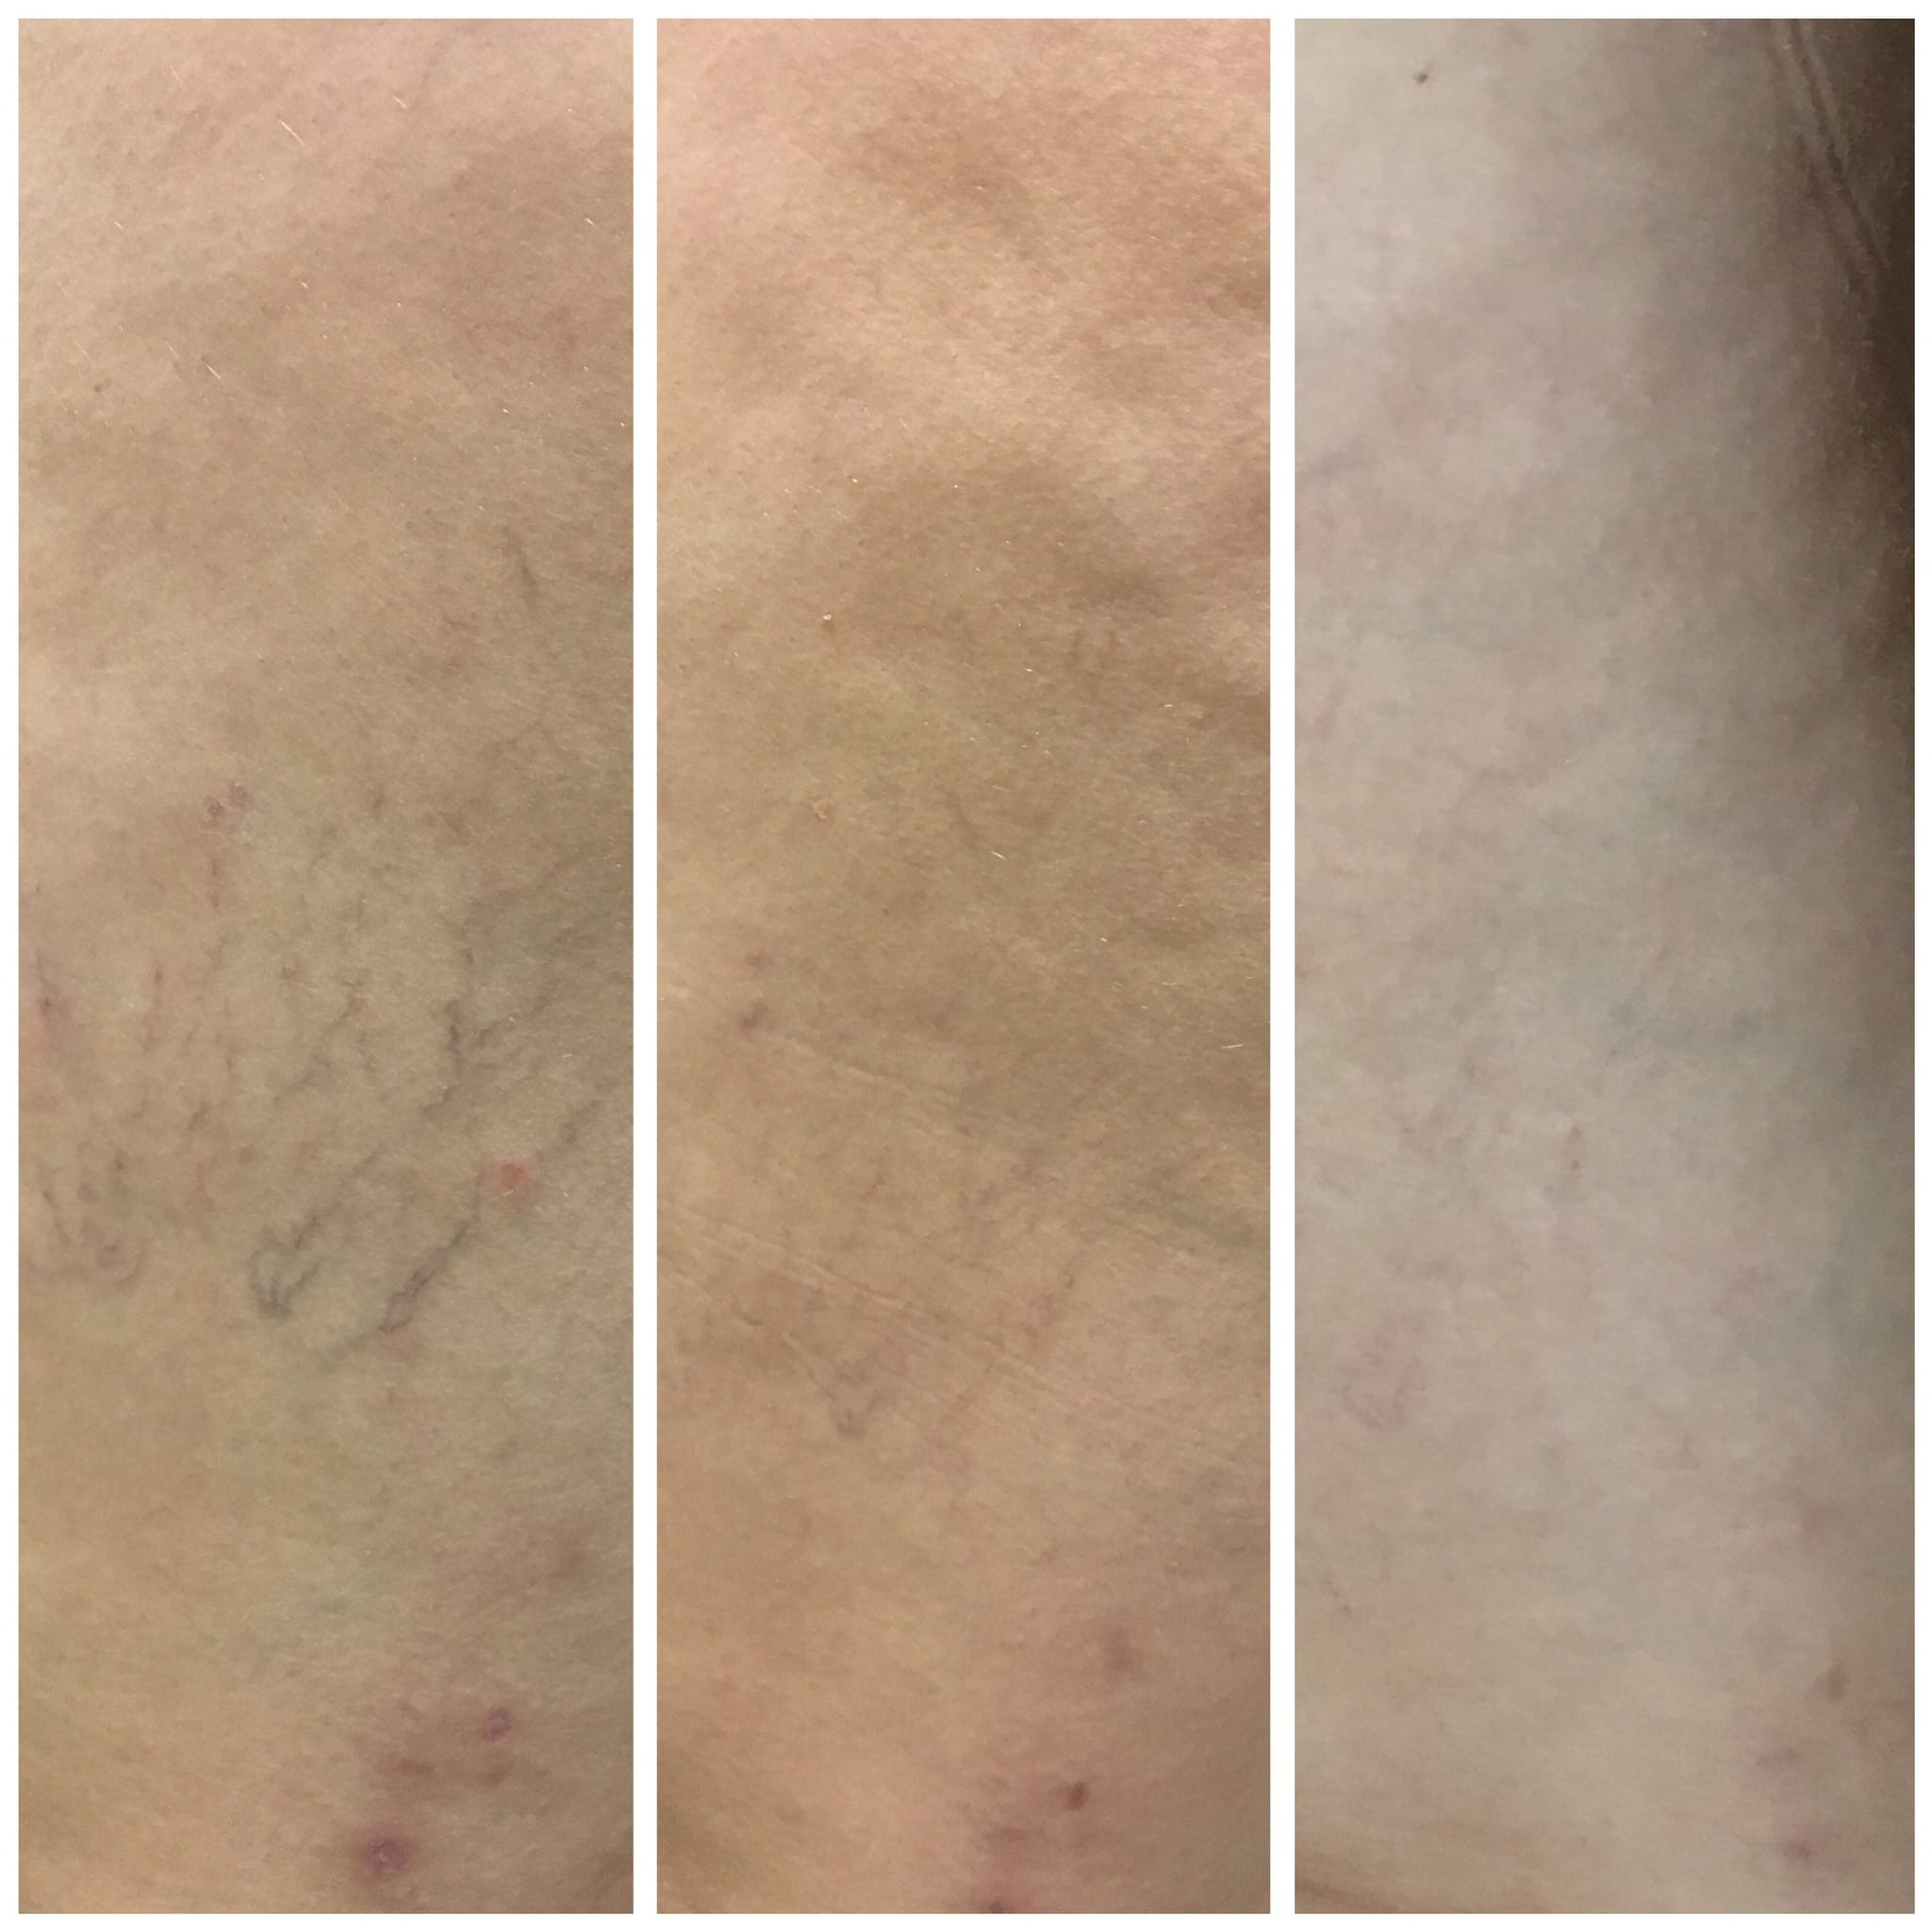 32 y/o Hispanic F after 3 treatments of sclerotherapy to the lateral thigh.